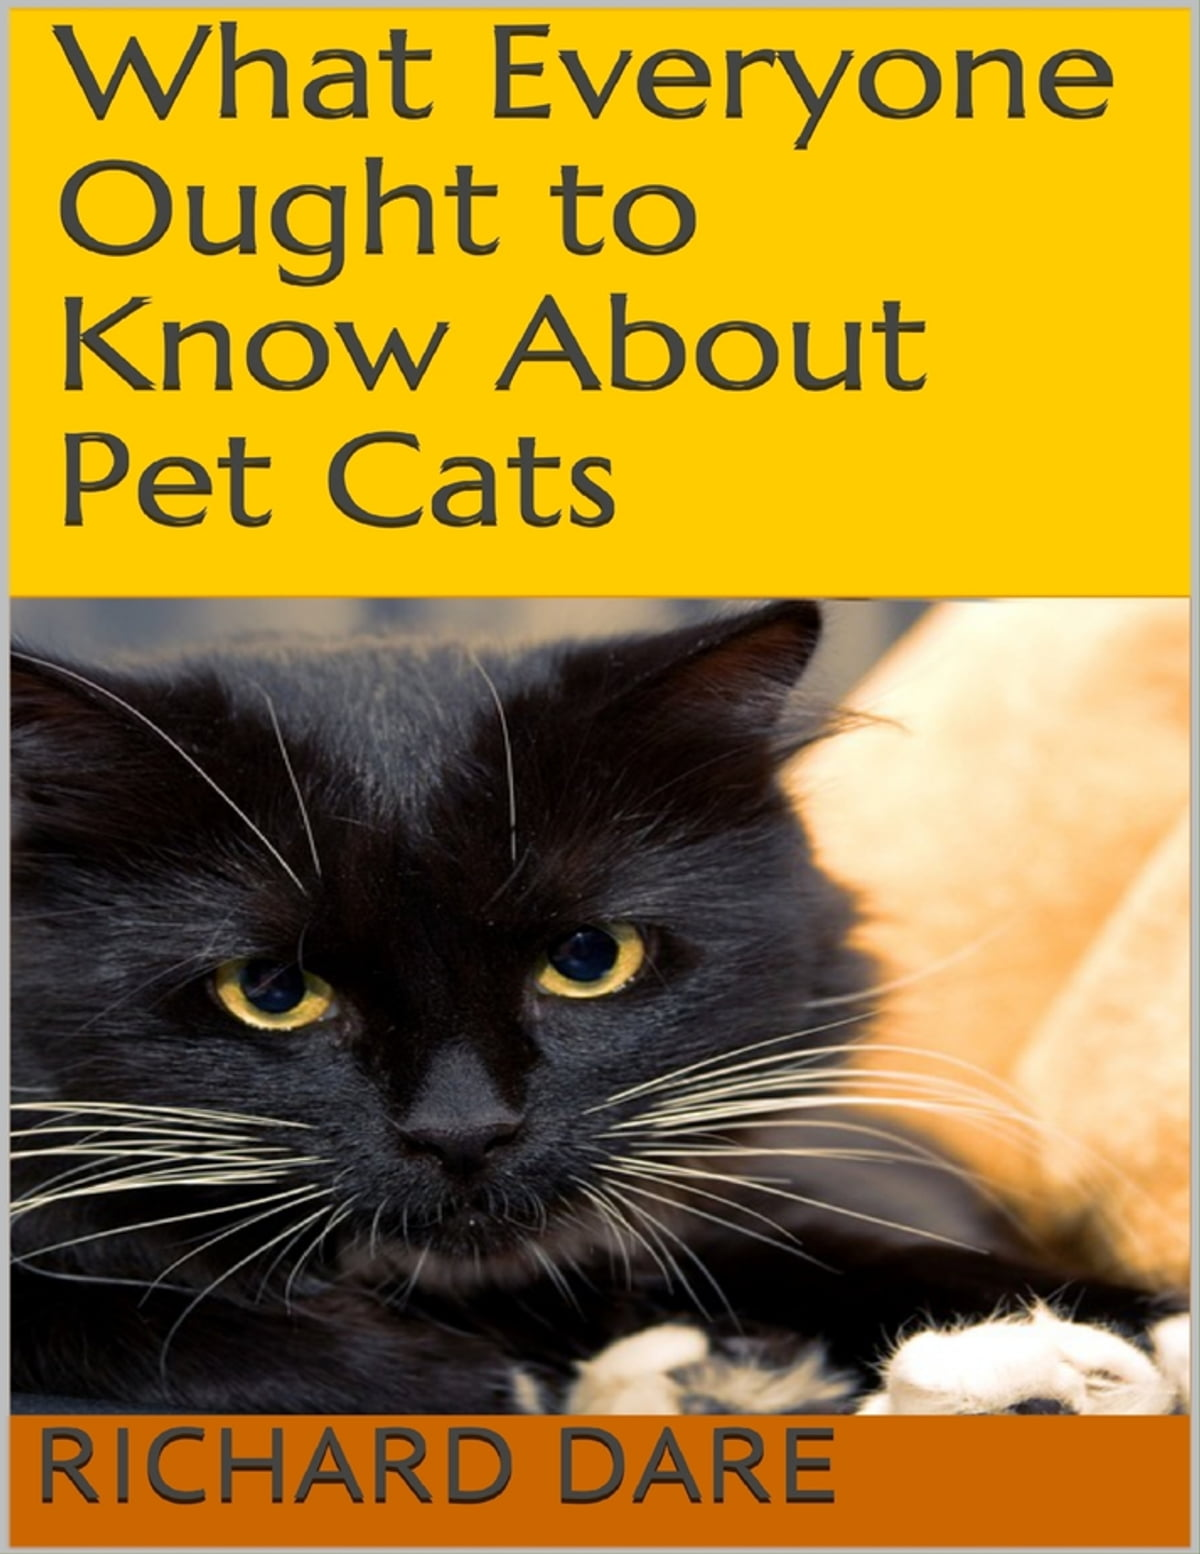 How to dare cats